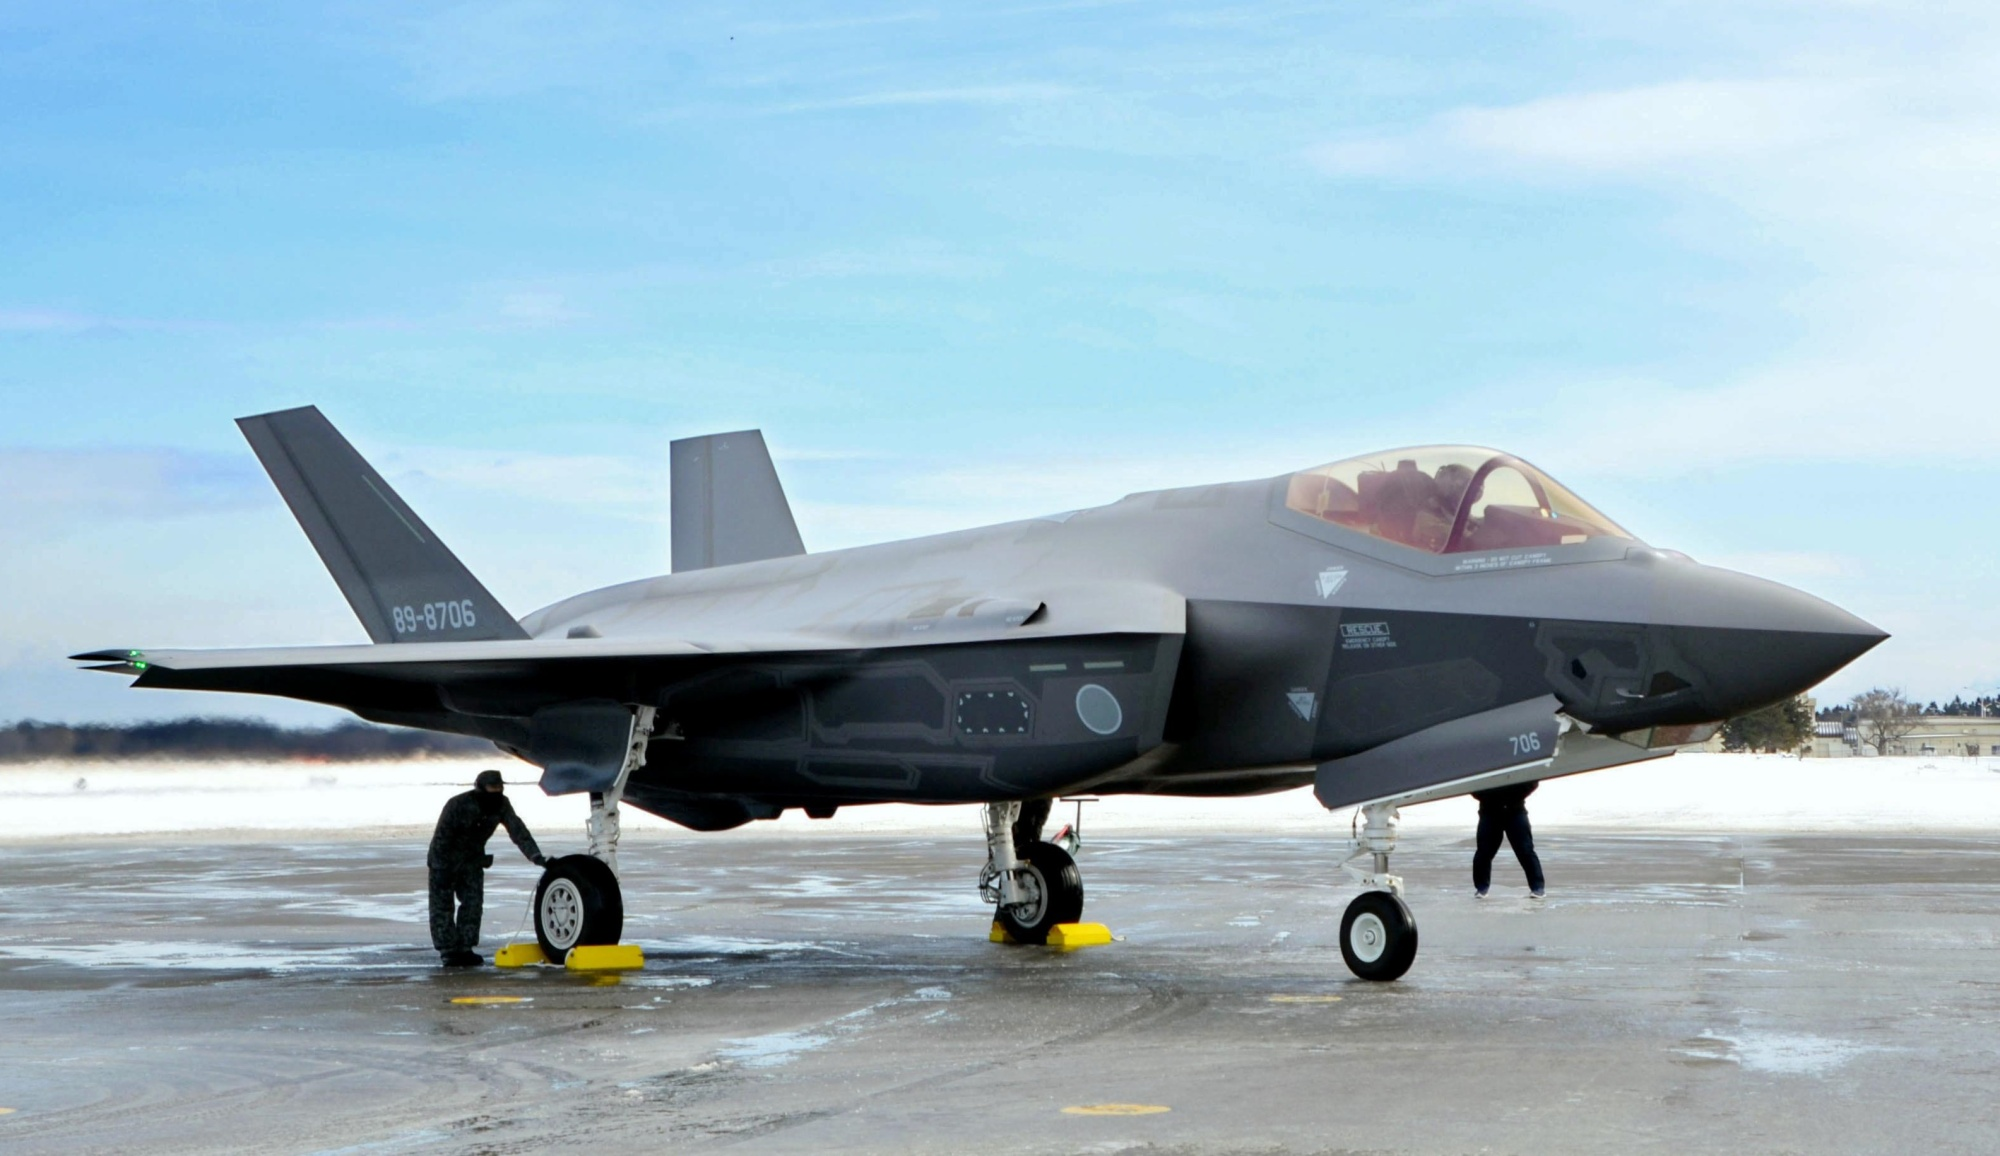 An F-35A stealth fighter at the Air Self-Defense Force's Misawa base in Aomori Prefecture in August last year | KYODO